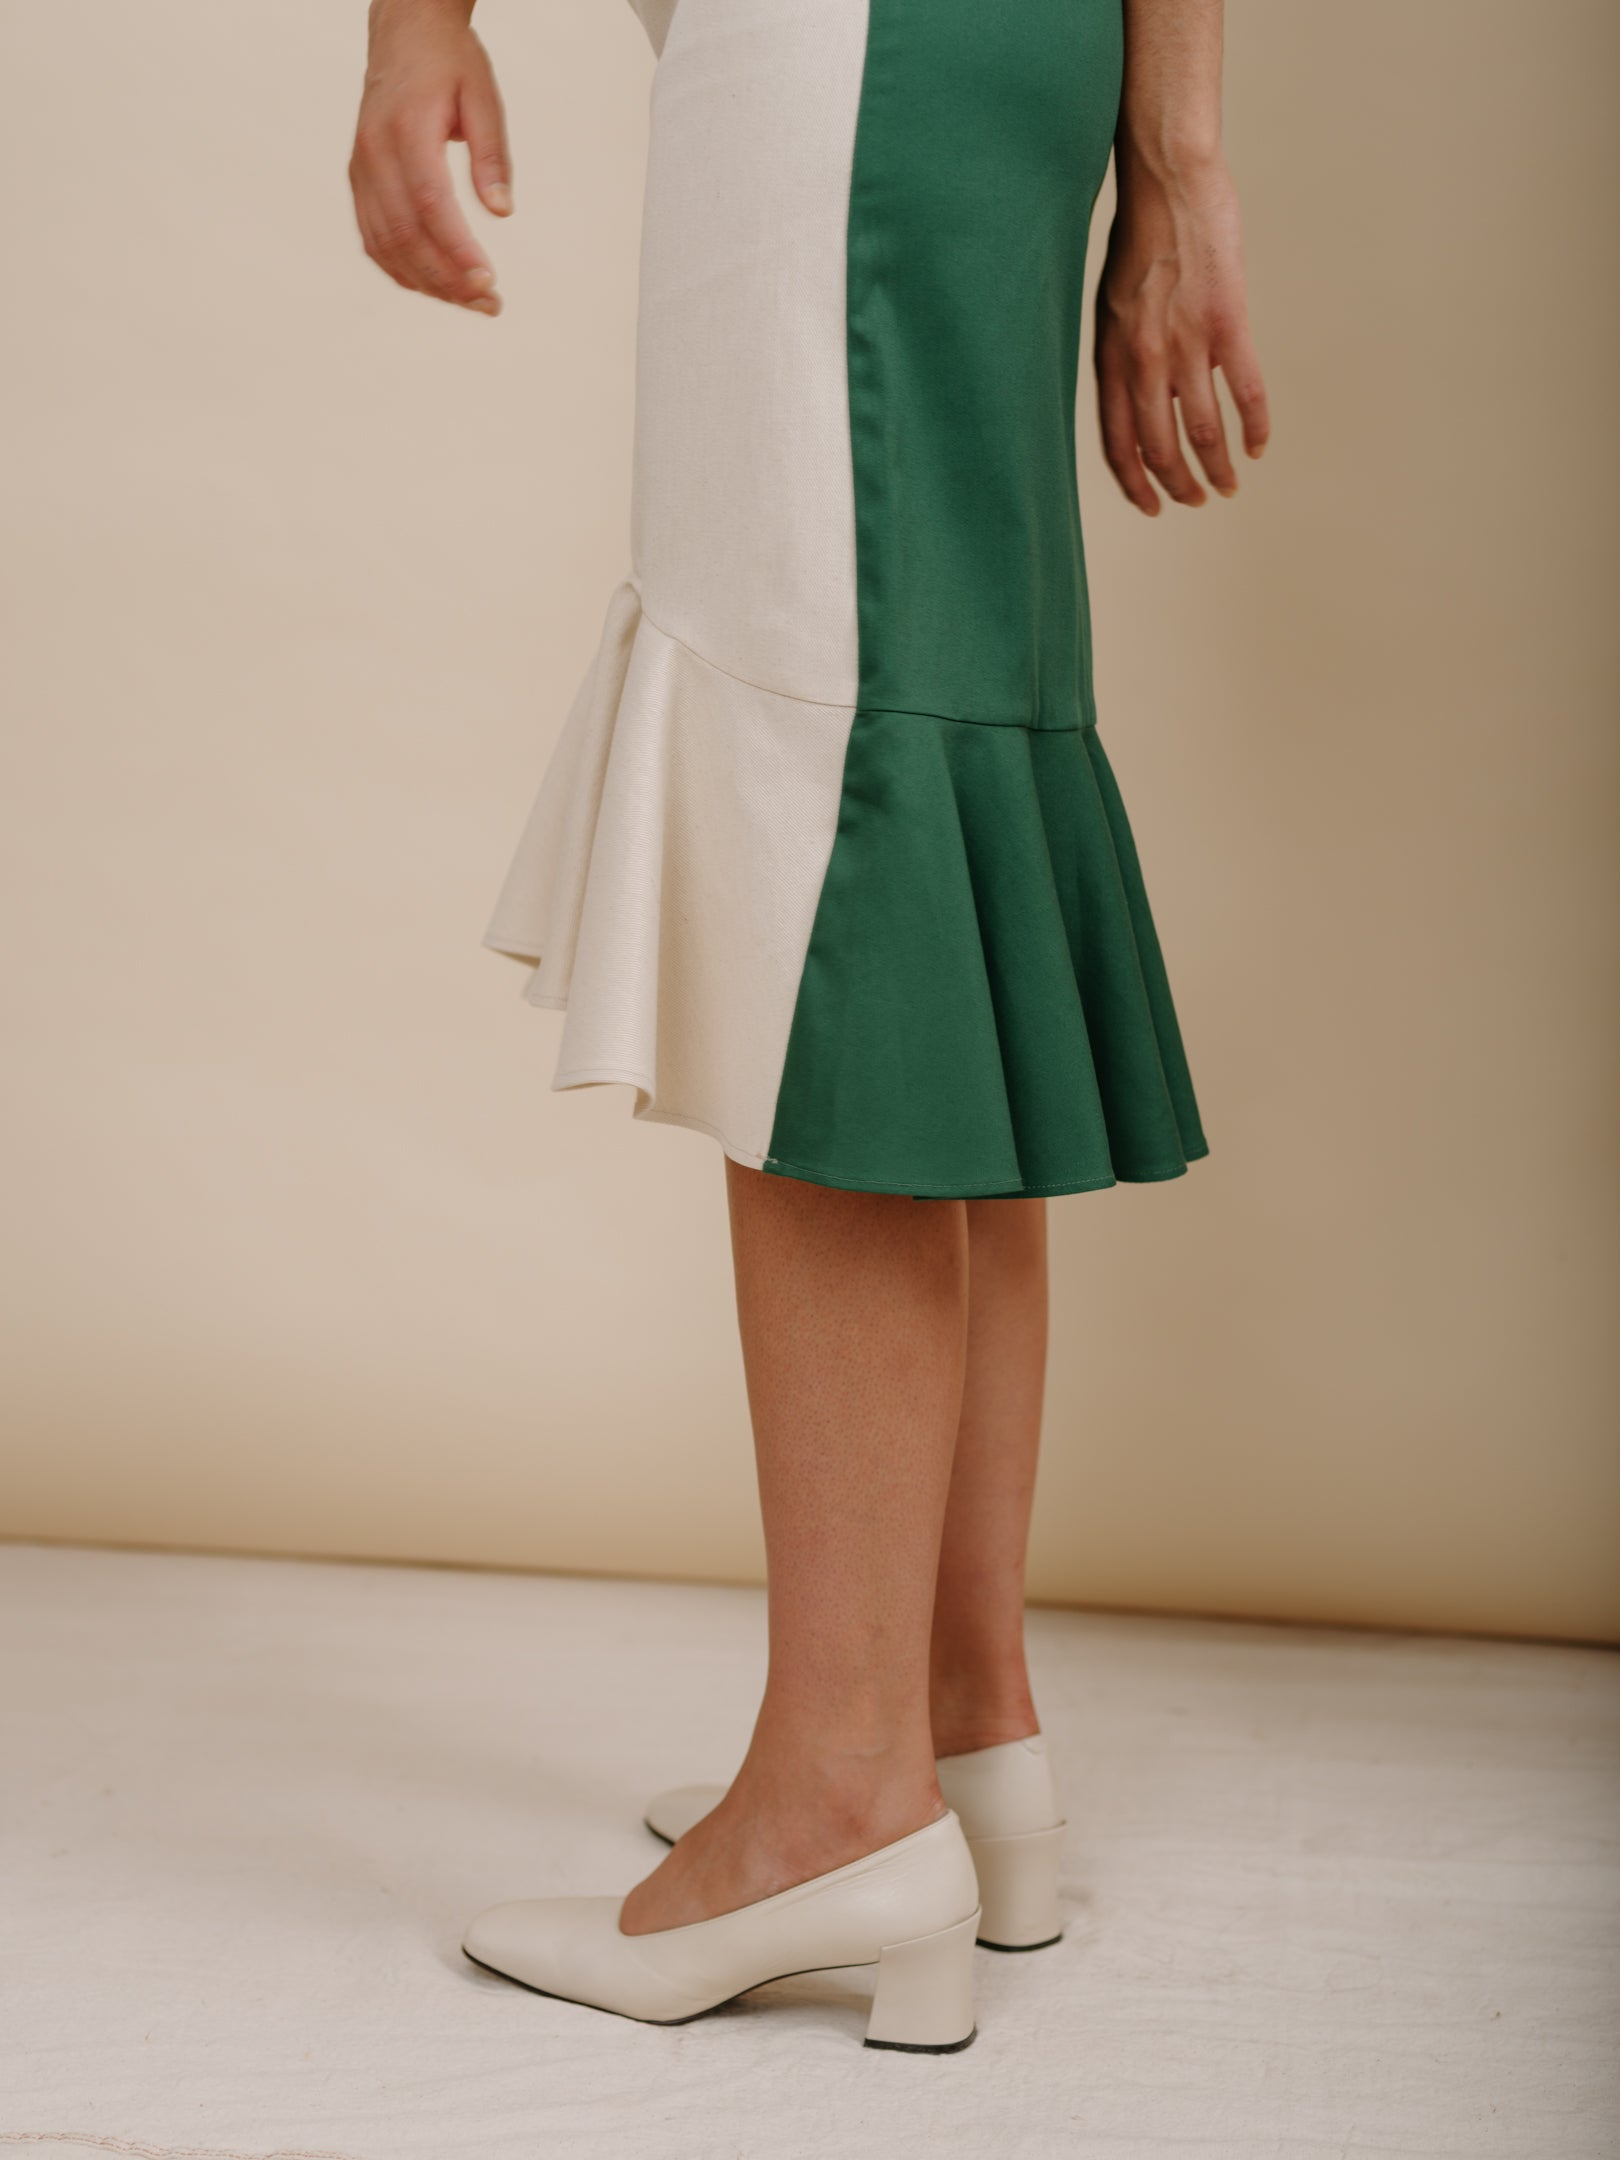 Flo Dress in Hunter/Eggshell Combo